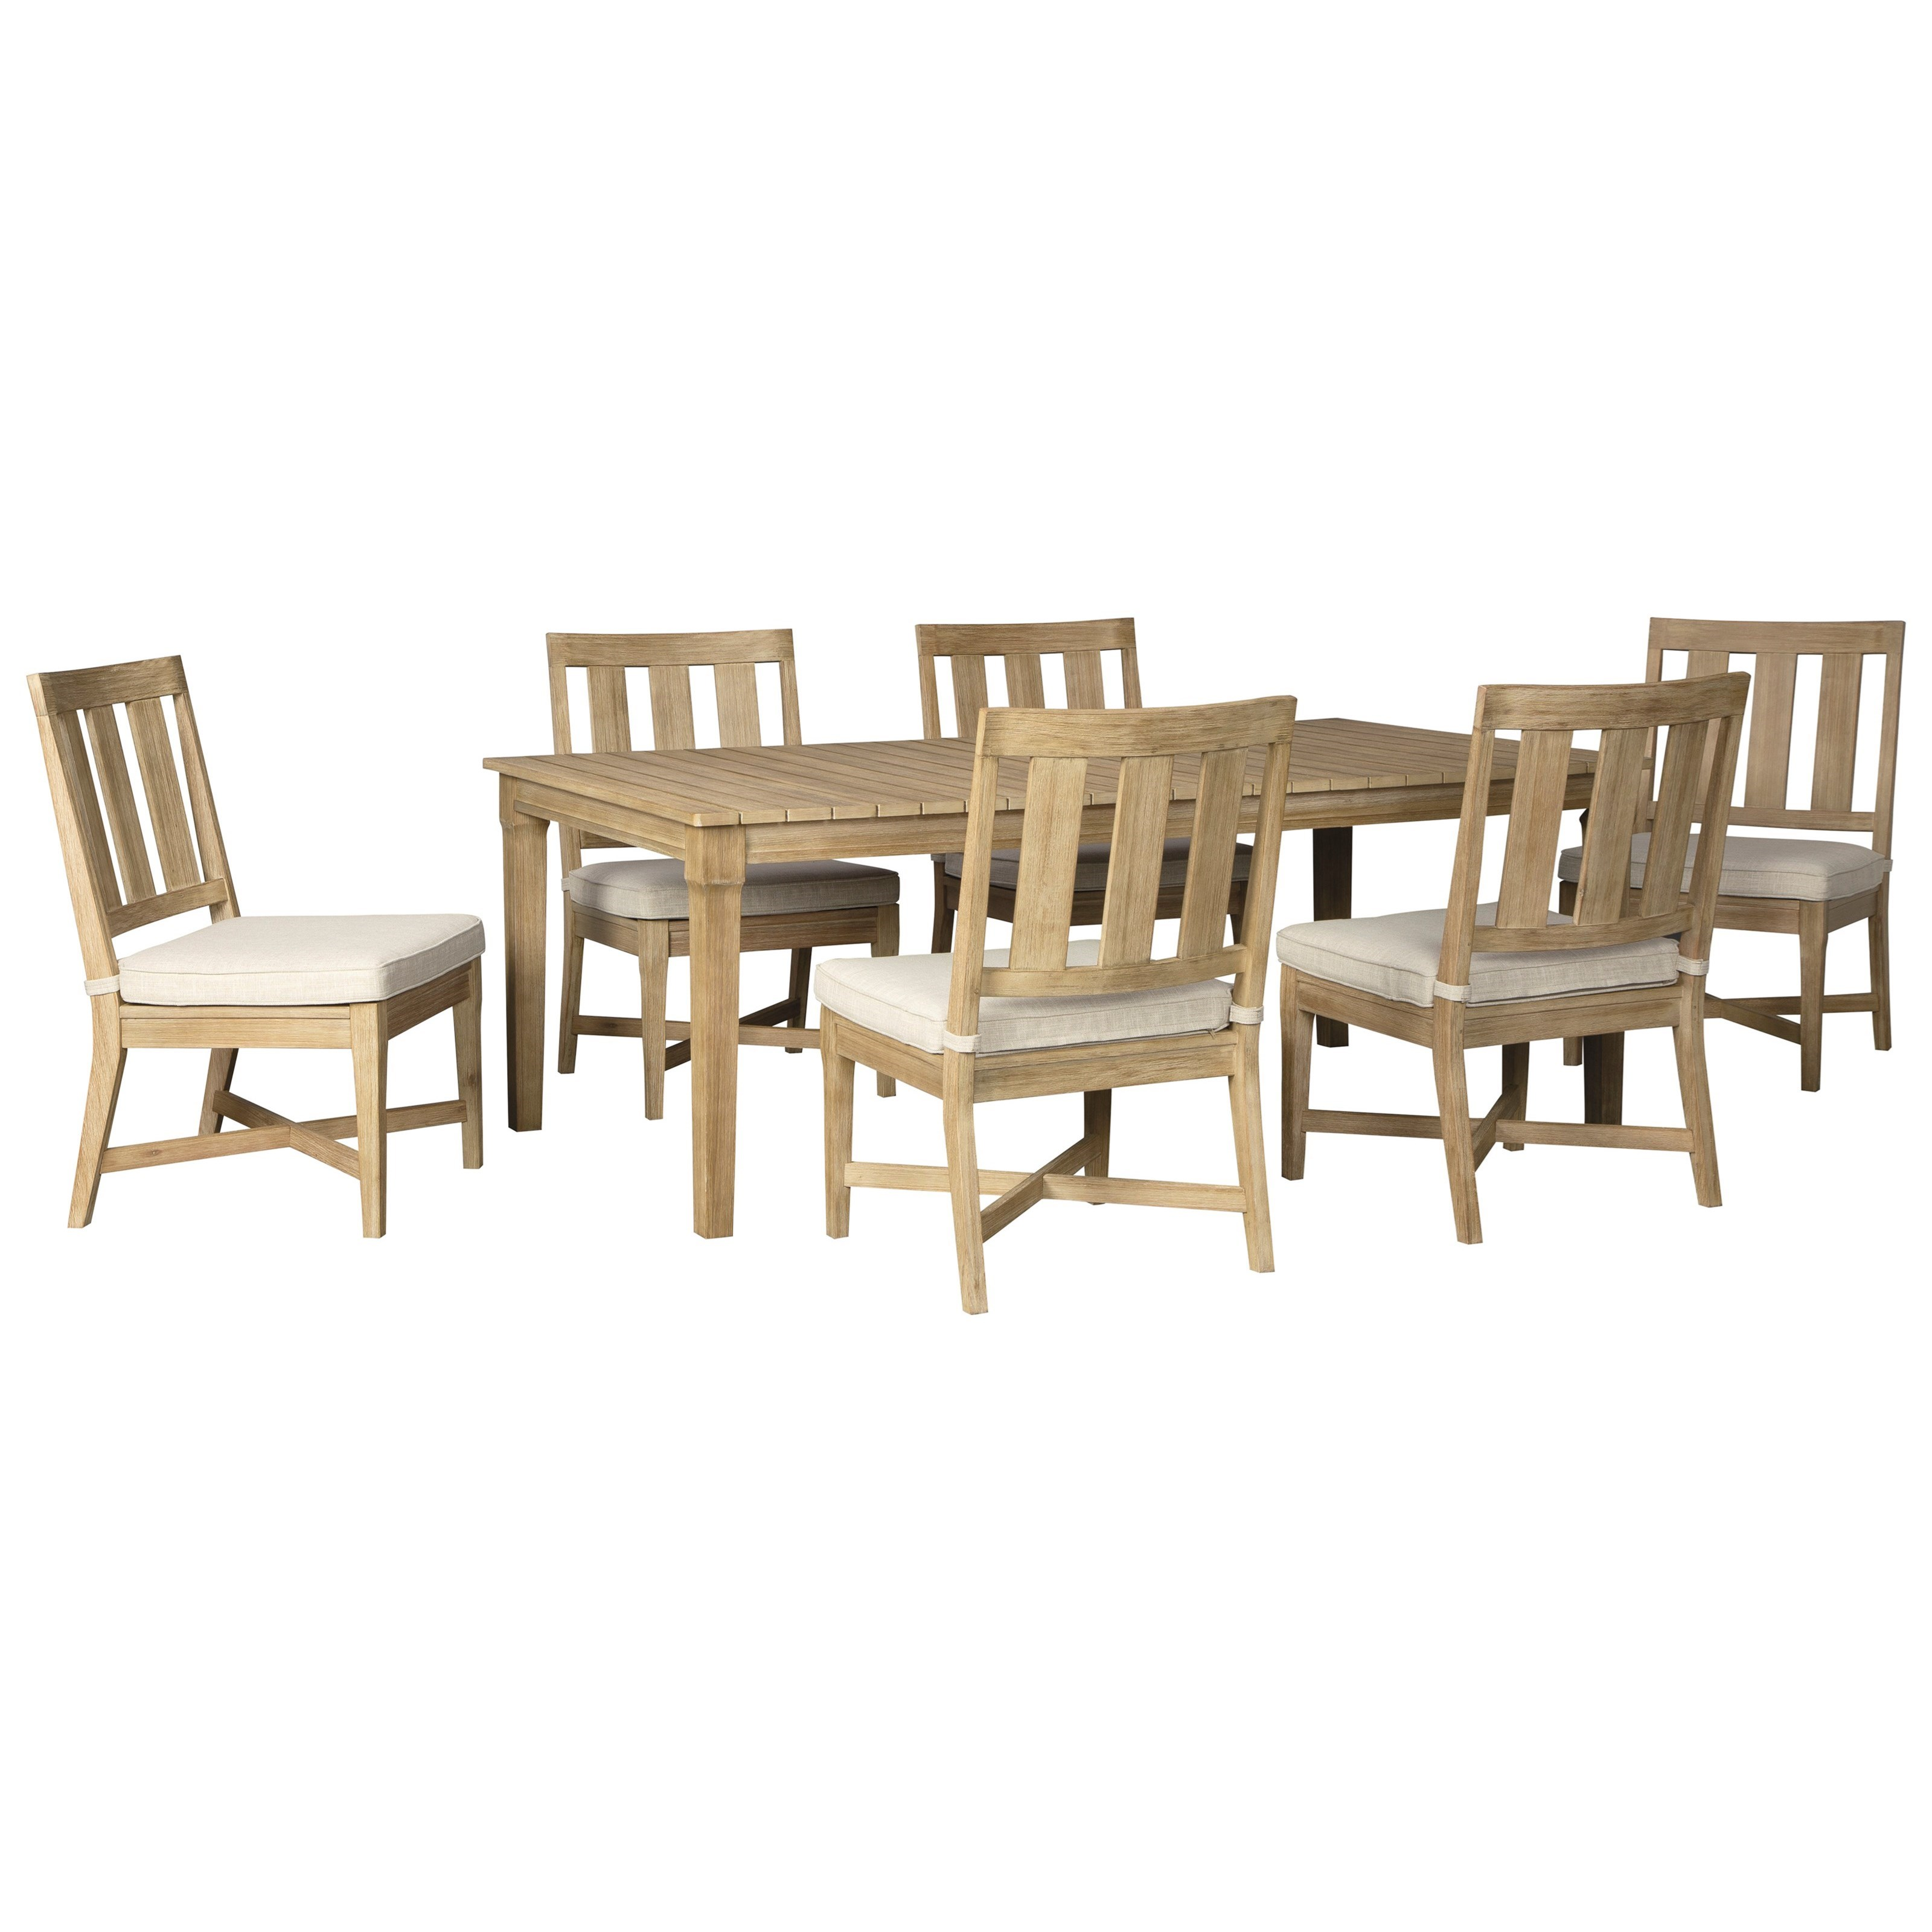 clare view 7 piece outdoor dining set